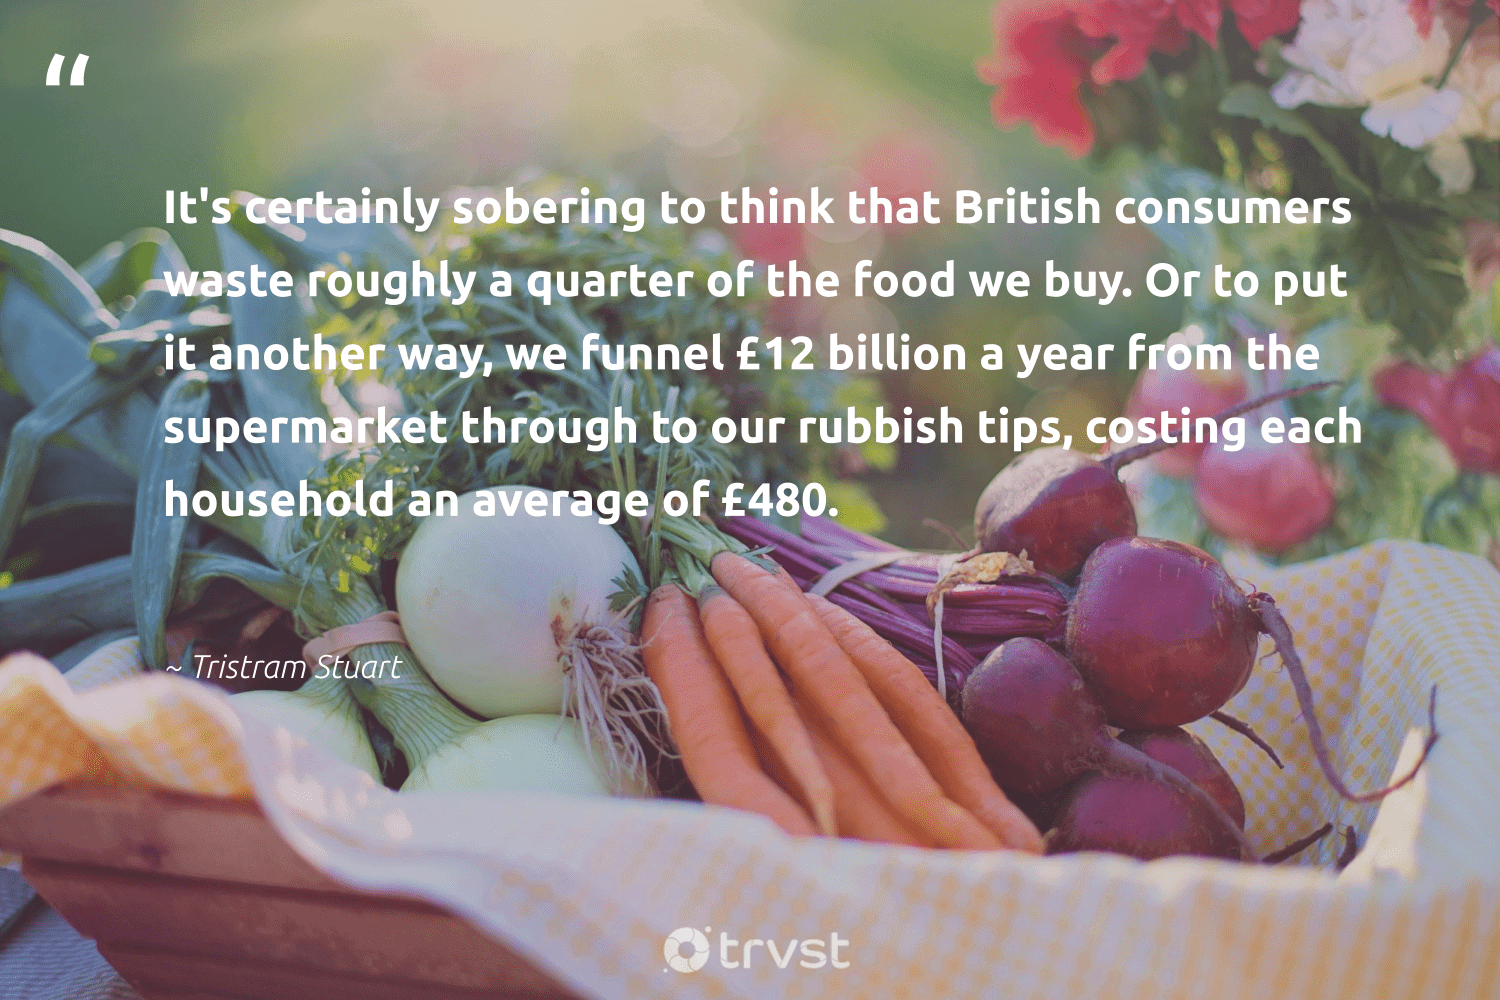 """""""It's certainly sobering to think that British consumers waste roughly a quarter of the food we buy. Or to put it another way, we funnel £12 billion a year from the supermarket through to our rubbish tips, costing each household an average of £480.""""  - Tristram Stuart #trvst #quotes #waste #food #hunger #dosomething #weareallone #impact #hungry #environmentallyfriendly #sustainablefutures #planetearthfirst"""